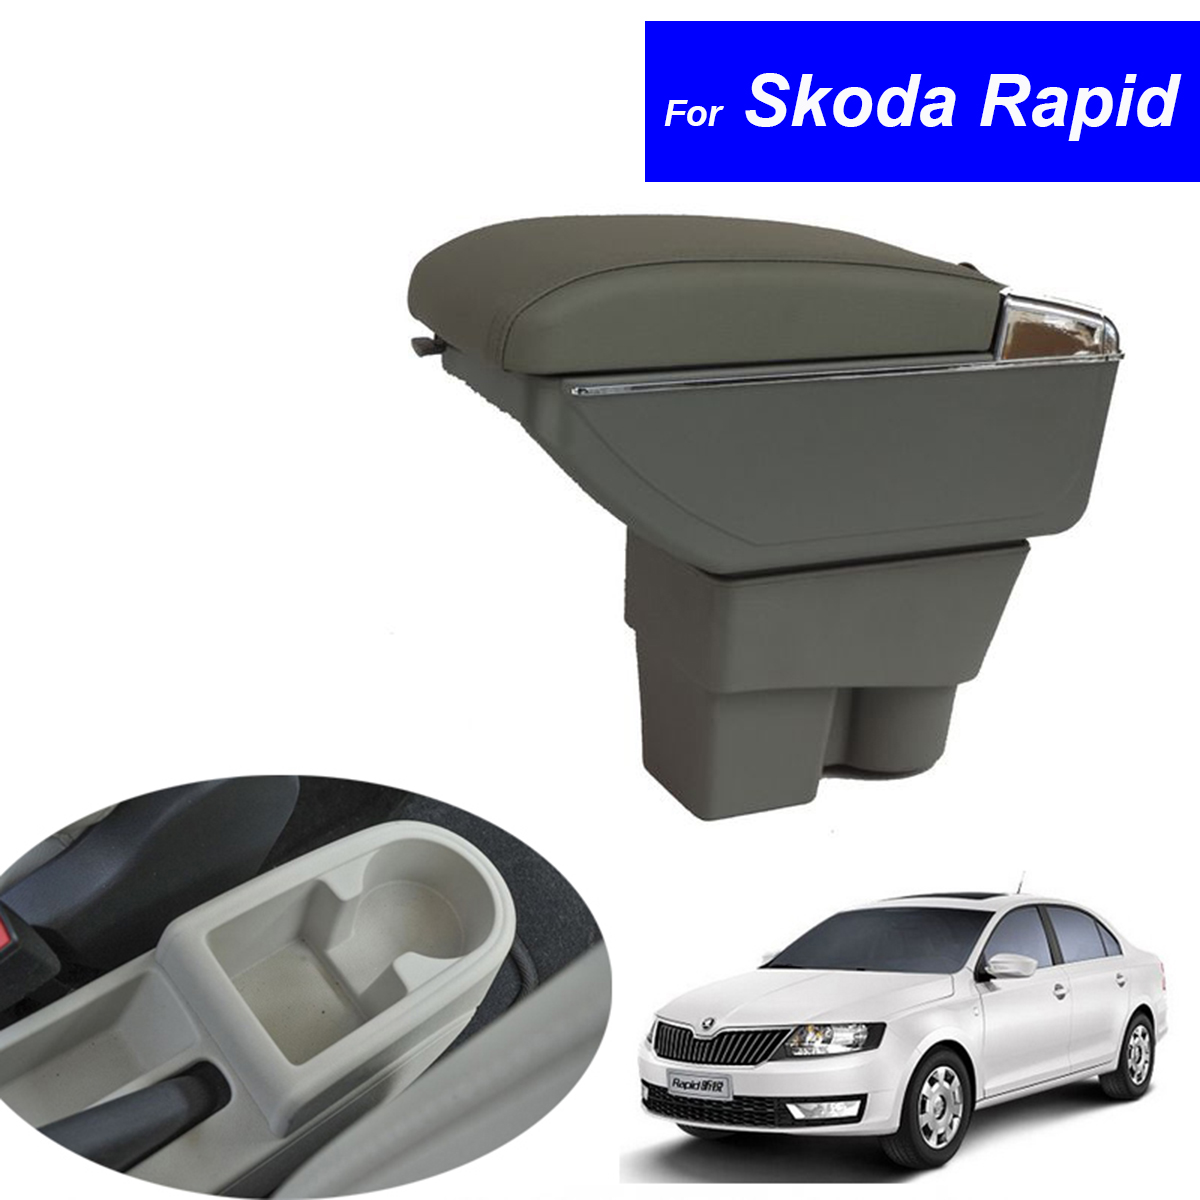 Leather Car Center Console Armrests Storage Box for Skoda Rapid 2013 2014 2015 2016 Auto Interior Parts Free Shipping leather car interior parts center console armrest box for nissan kicks 2016 2017 2018 auto armrests storage with usb